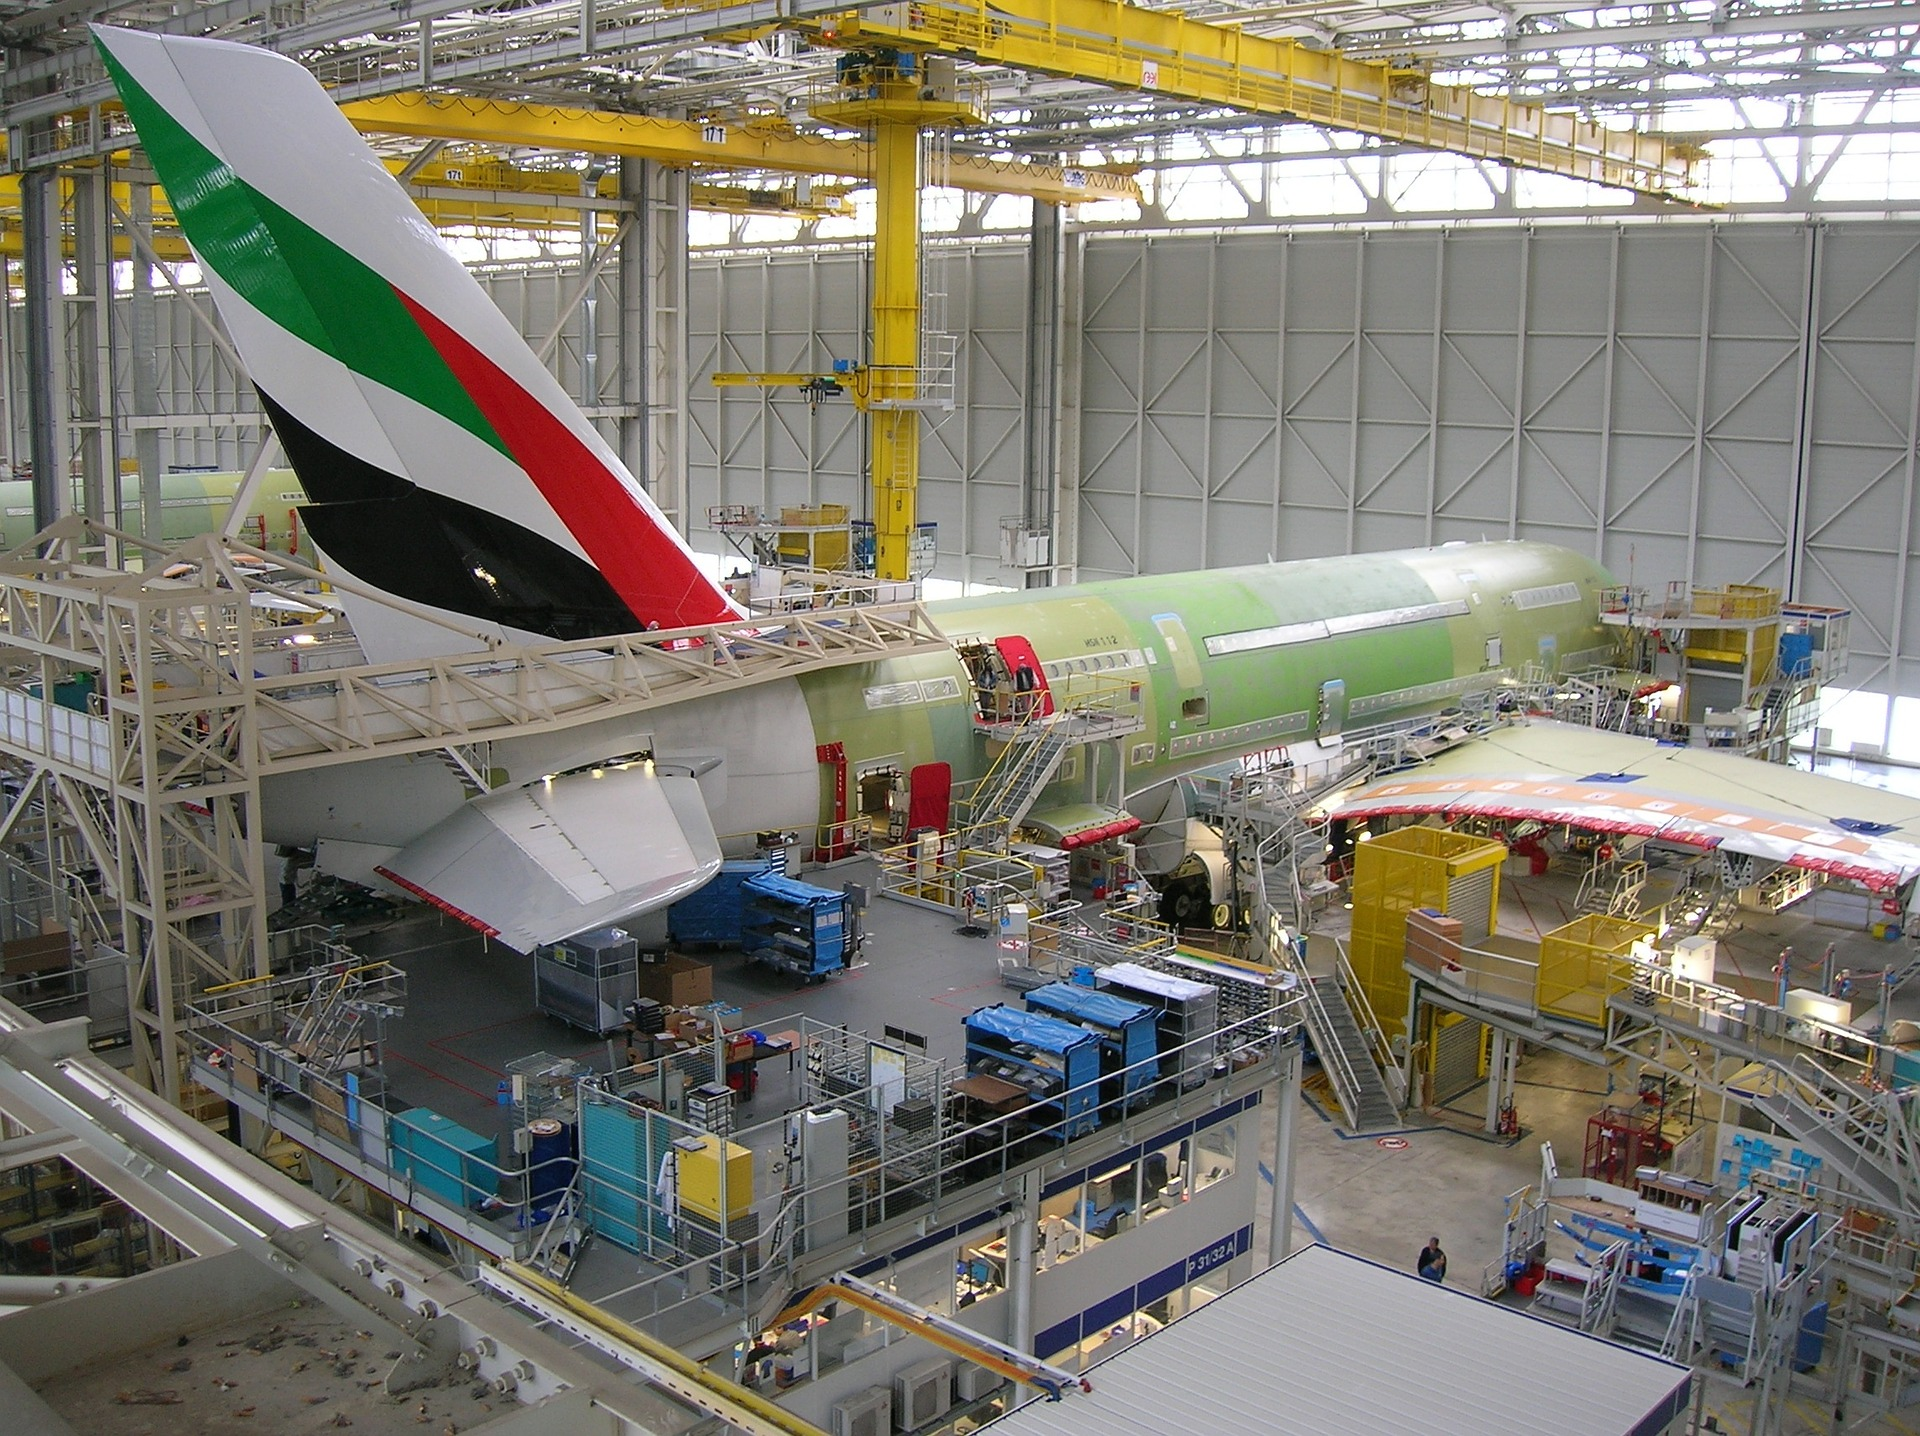 Lean aircraft production